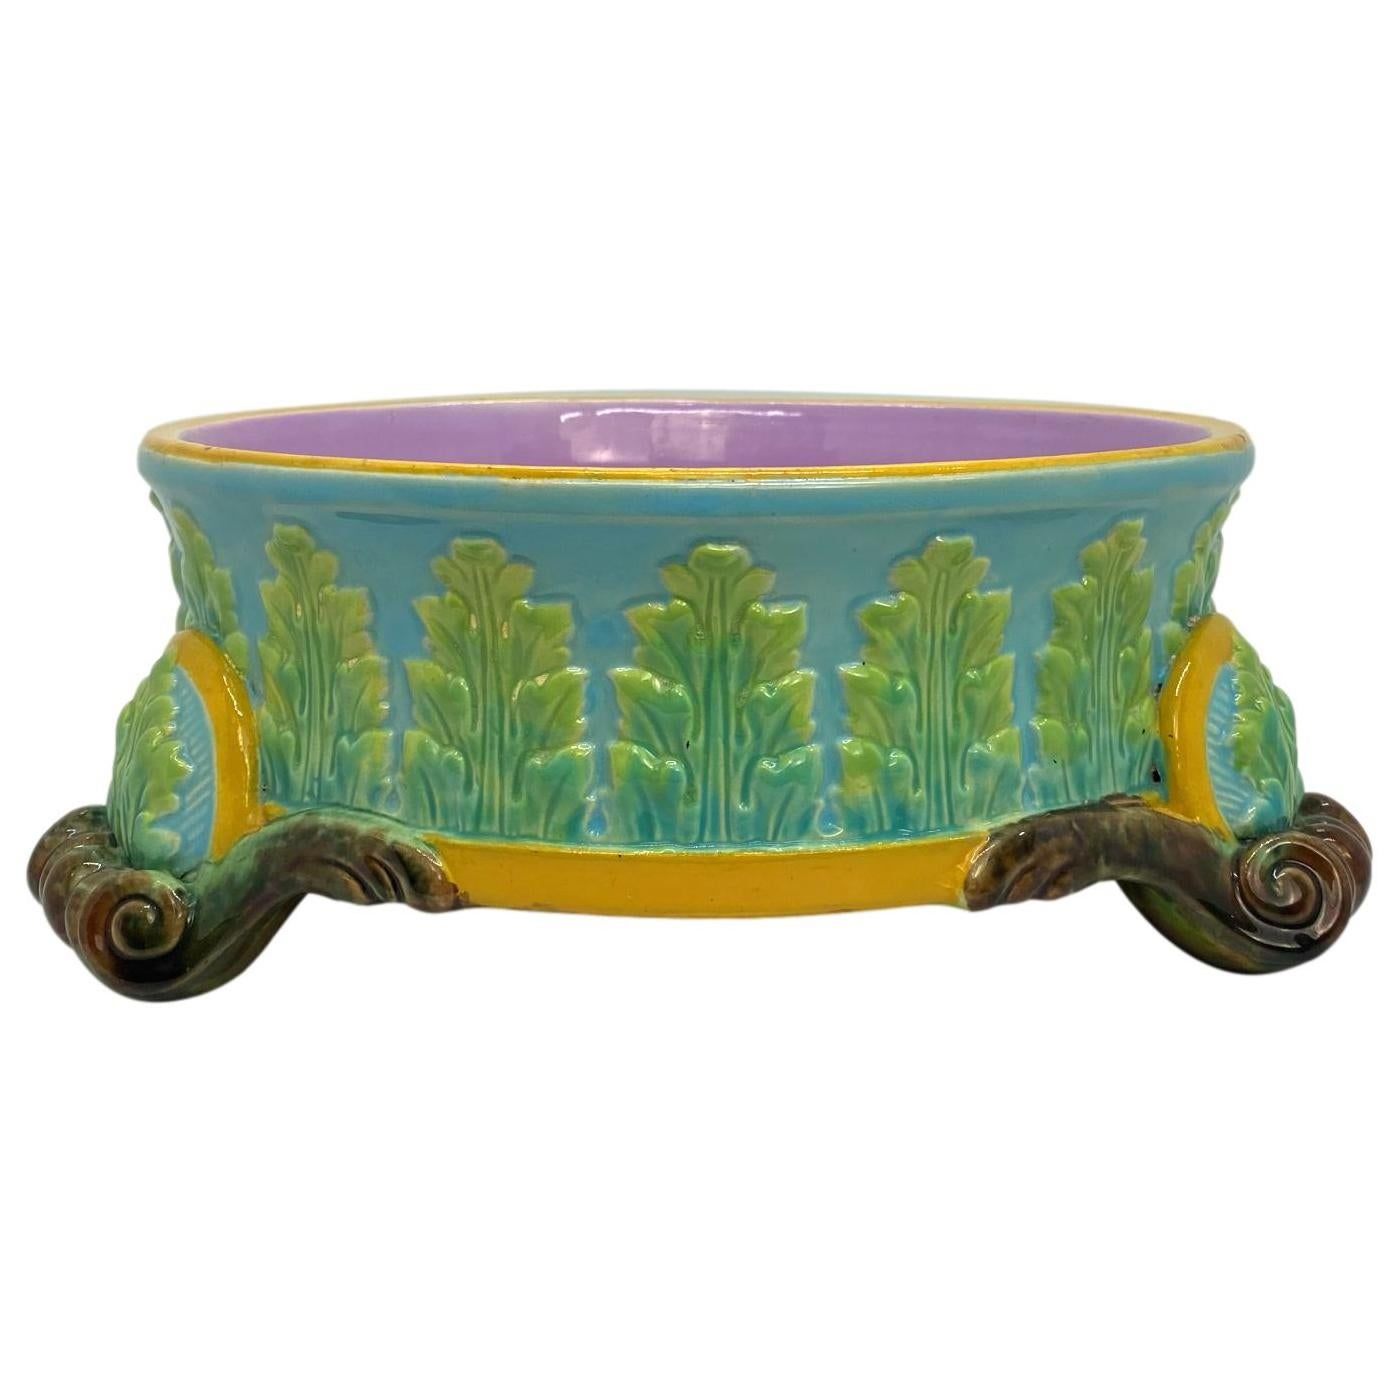 George Jones Majolica Dog Bowl, Glazed in Turquoise, Pink Interior, Dated 1884